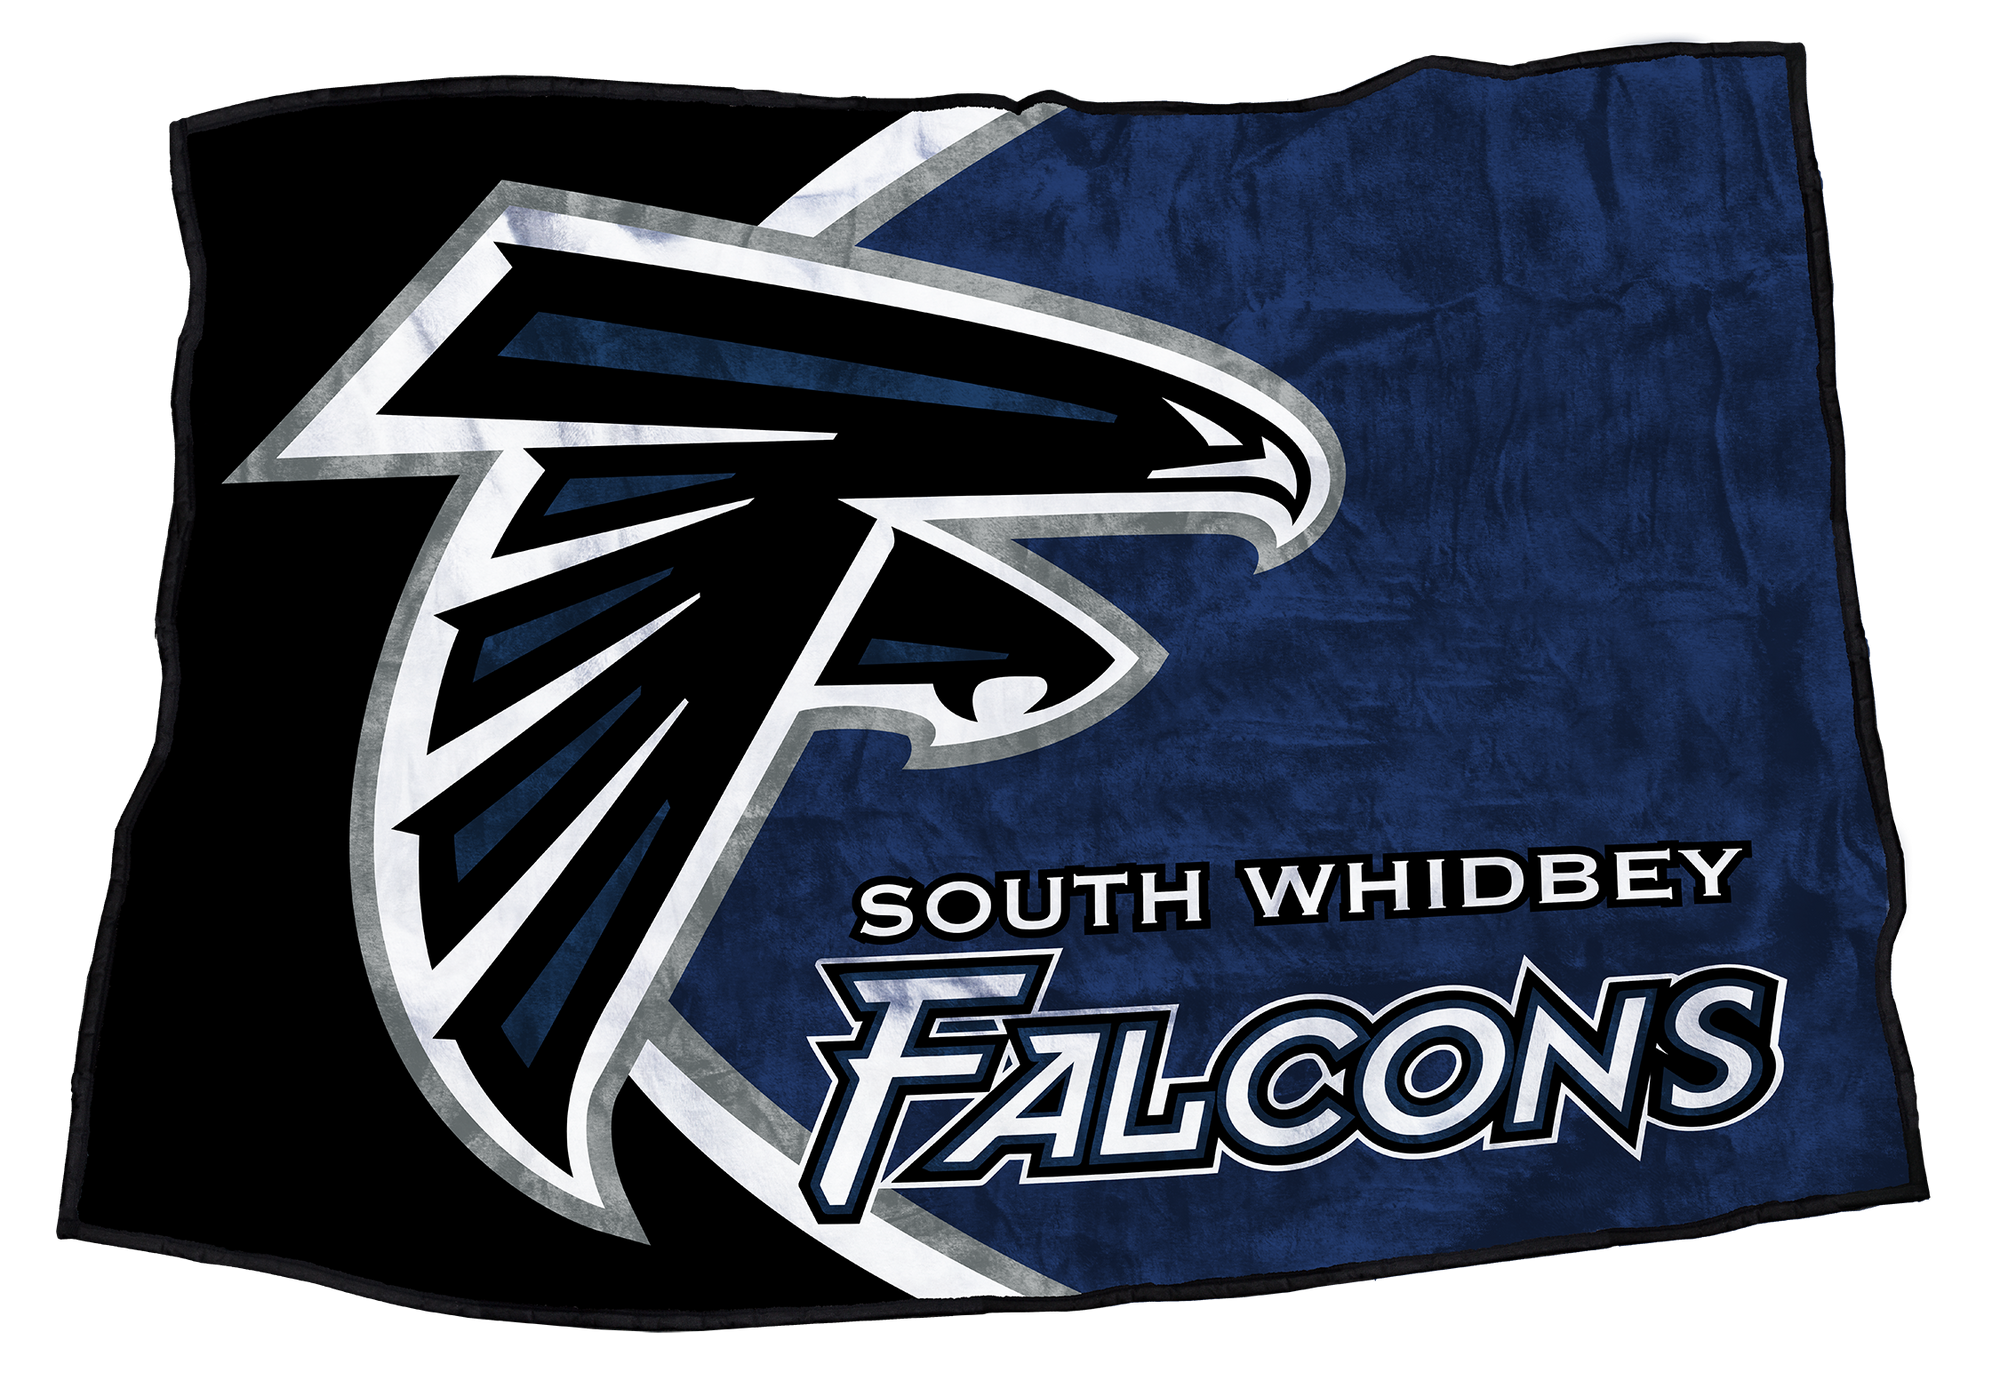 South Whidbey Falcons